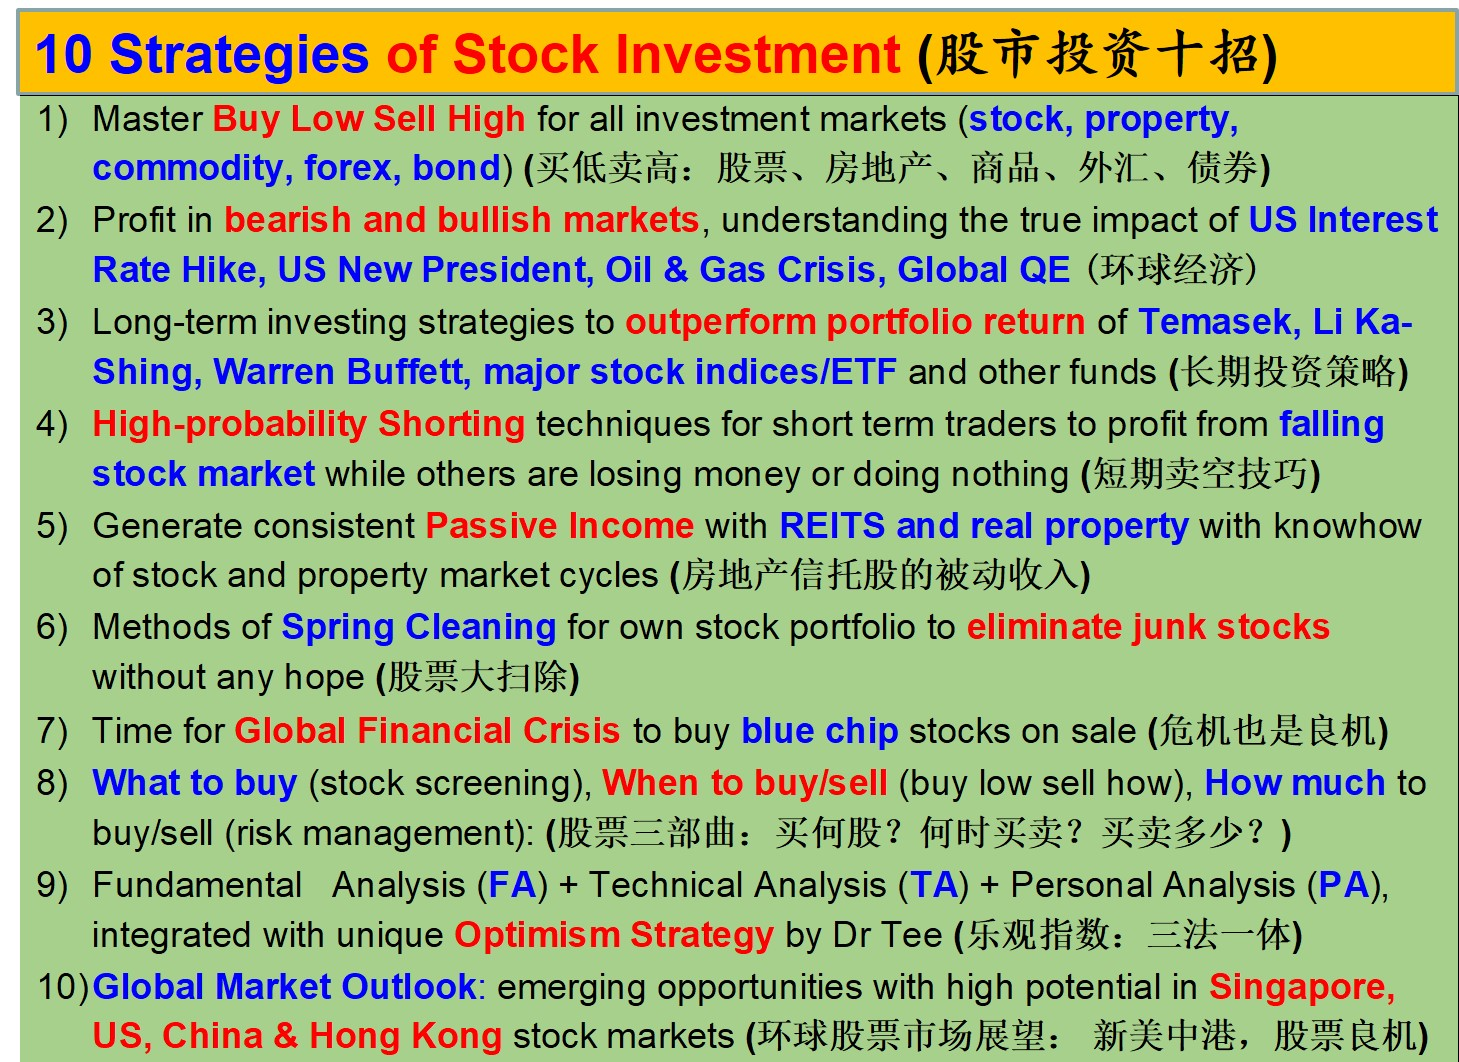 10 Strategies of Stock Investment by Dr Tee (Ein55)